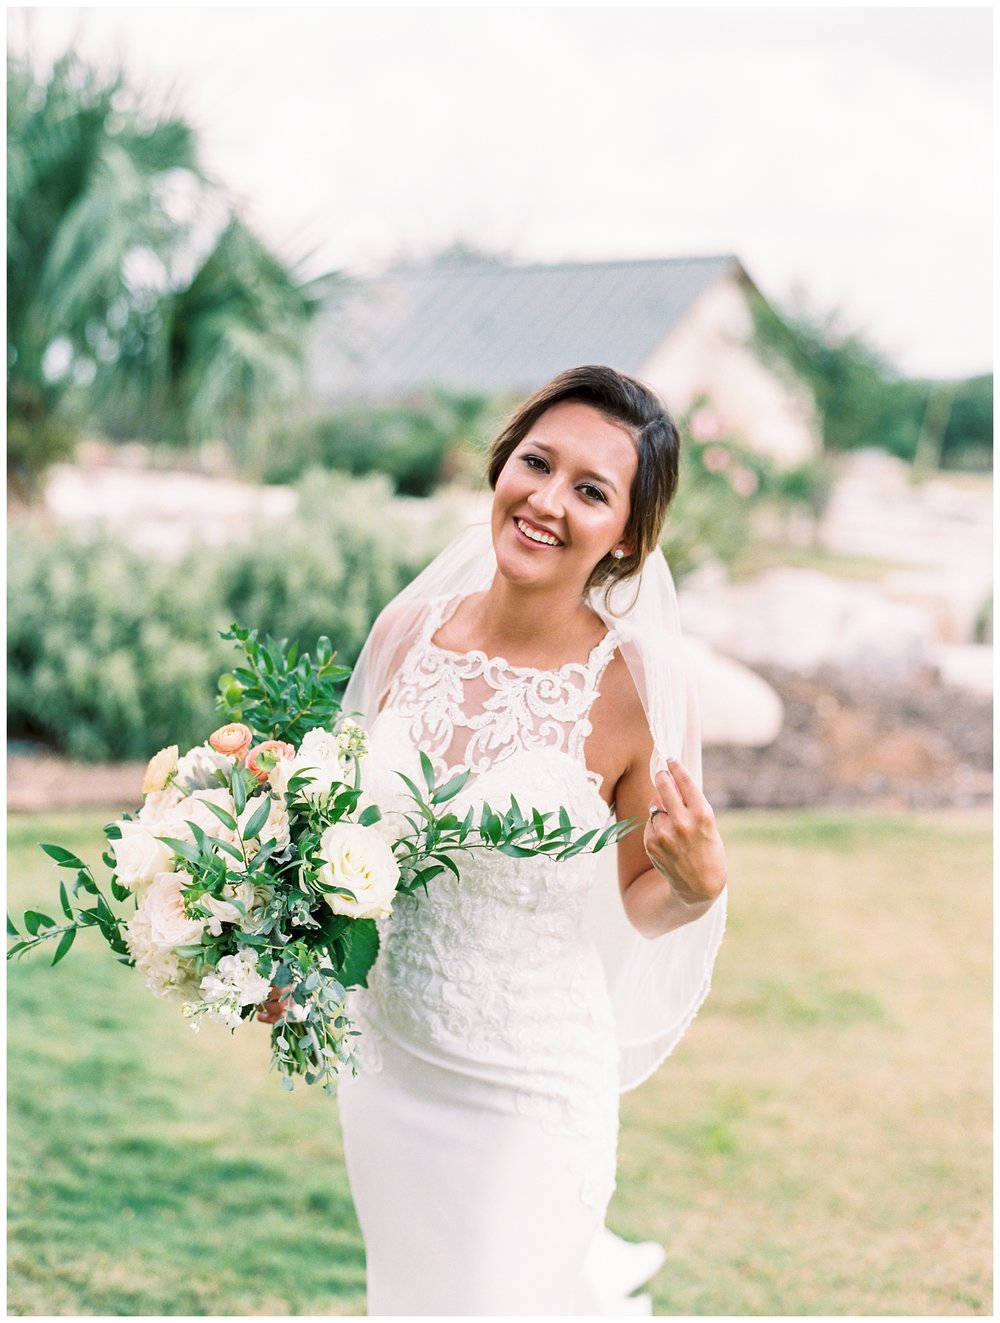 Hill Country Wedding Austin Texas Wedding Photographer_0040.jpg